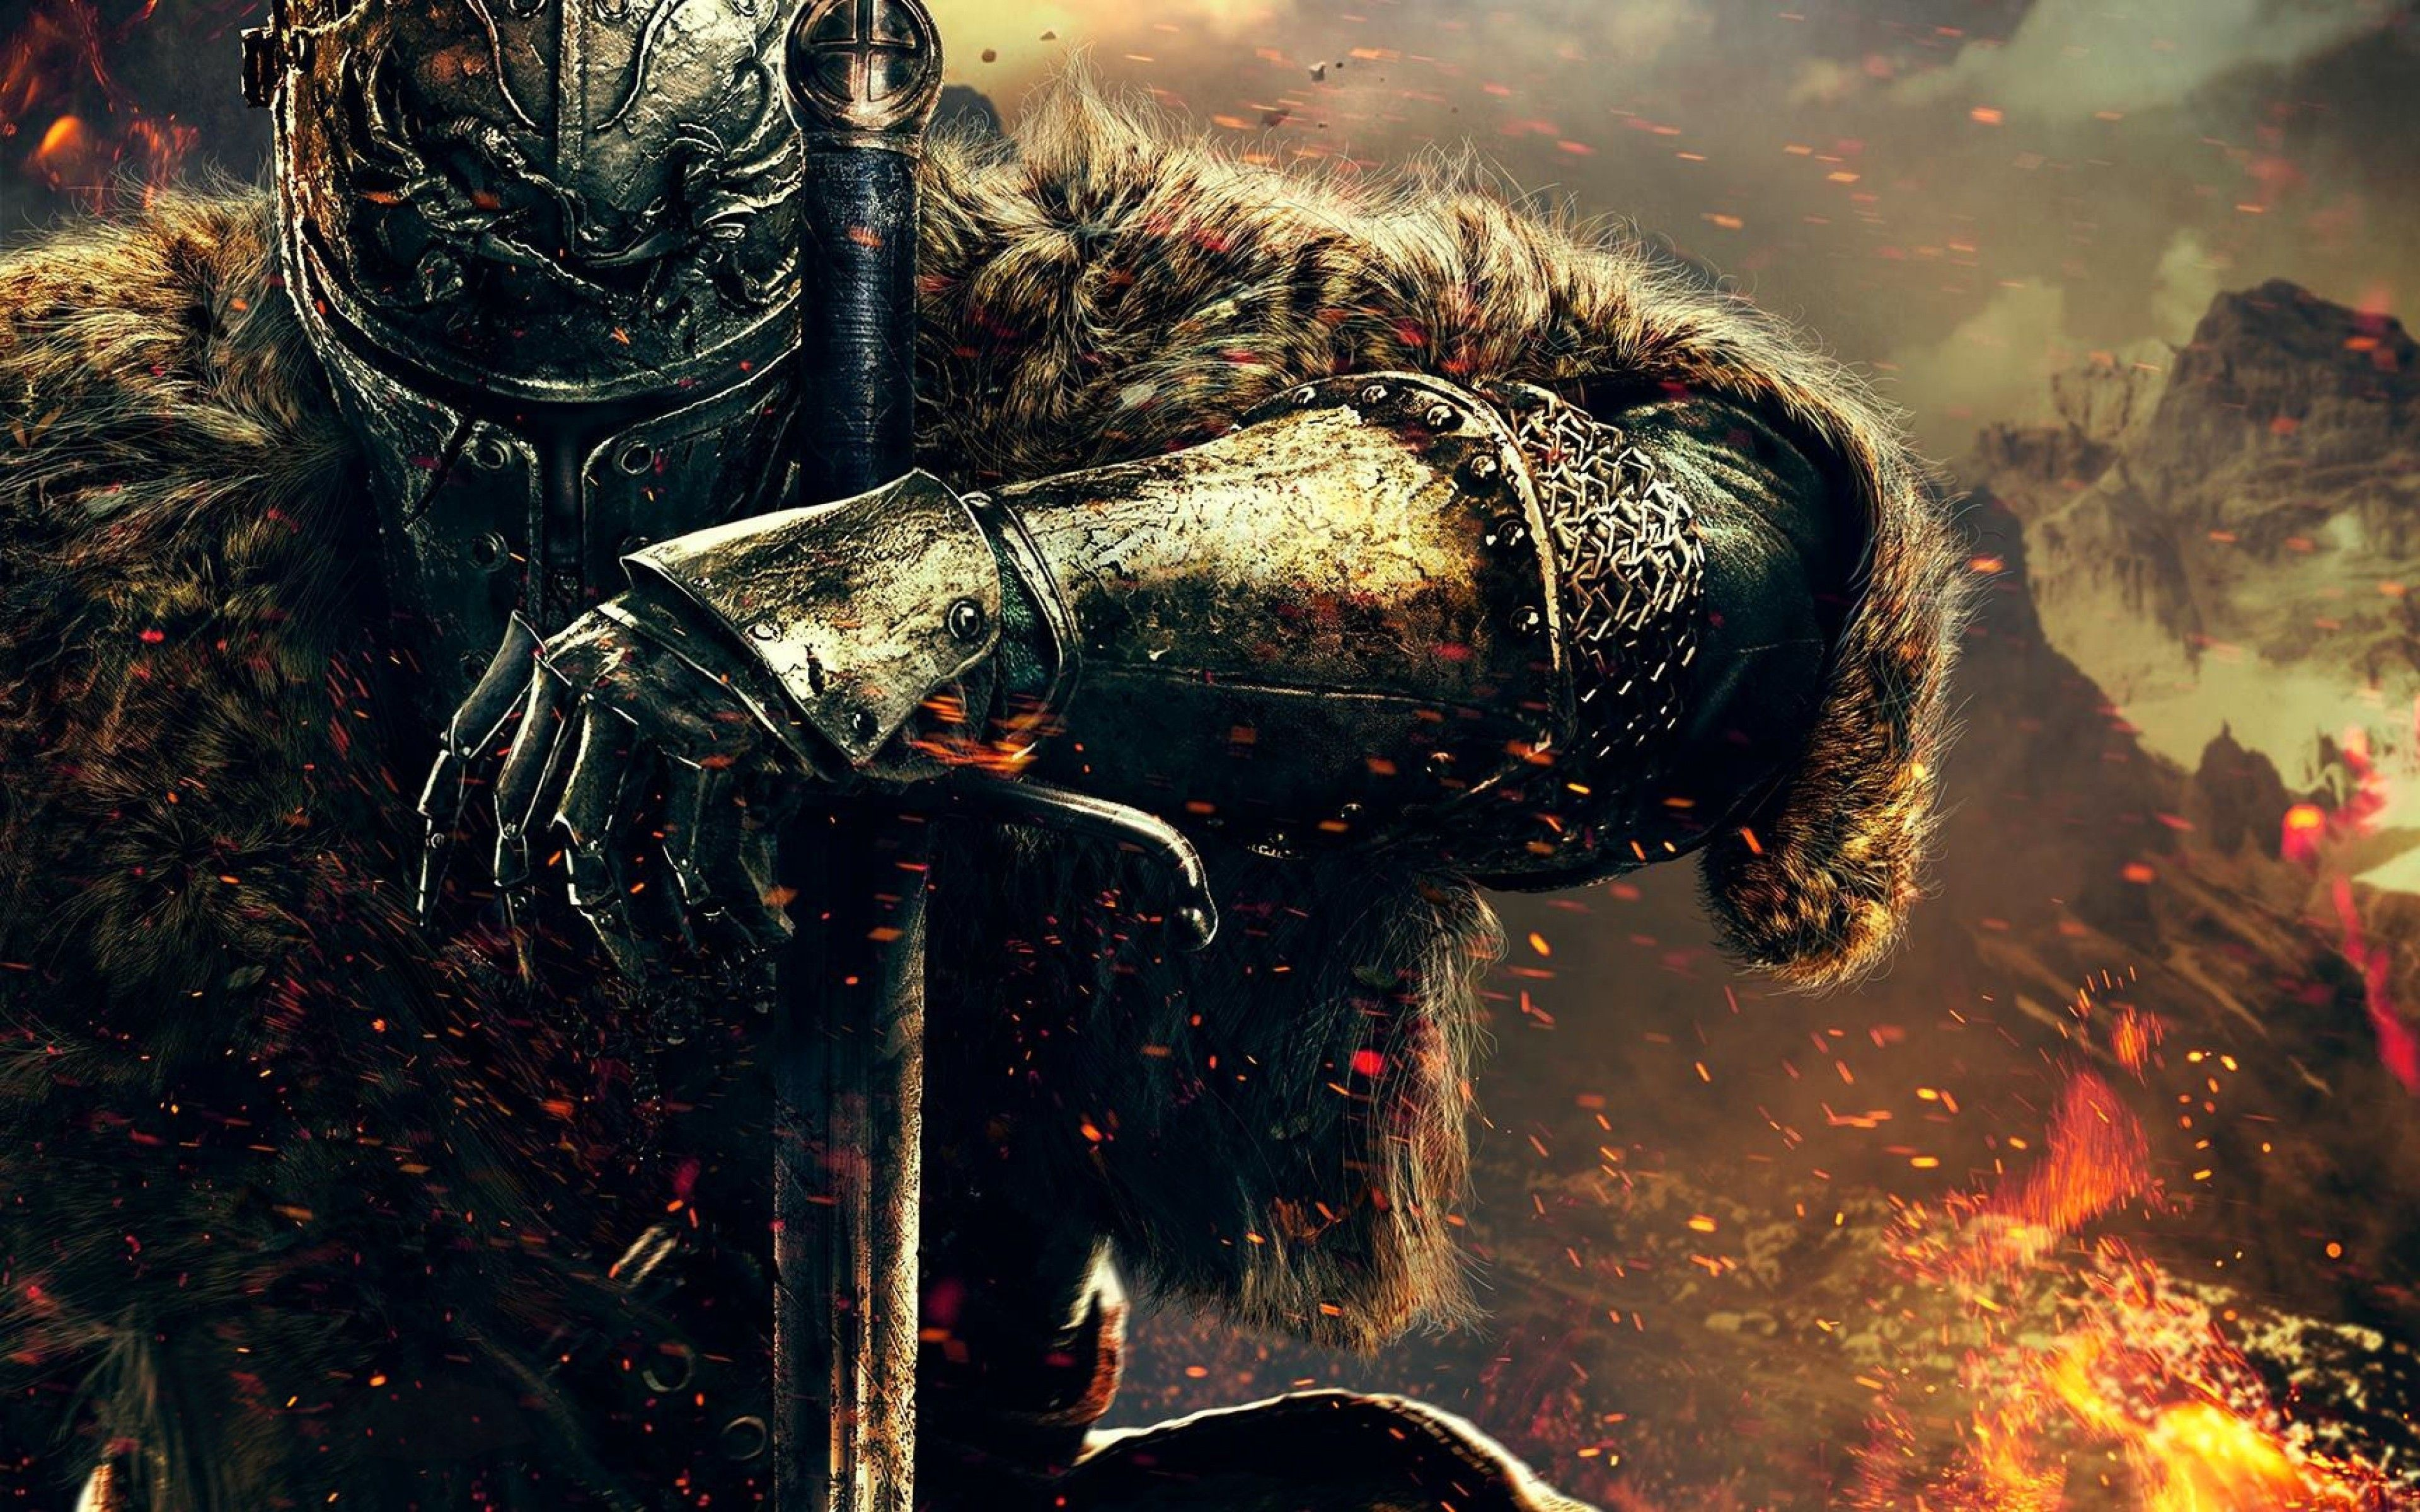 4k Gaming Wallpapers For Pc 11494 Hd Wallpapers Site Dark Souls Wallpaper Dark Souls 2 Dark Souls